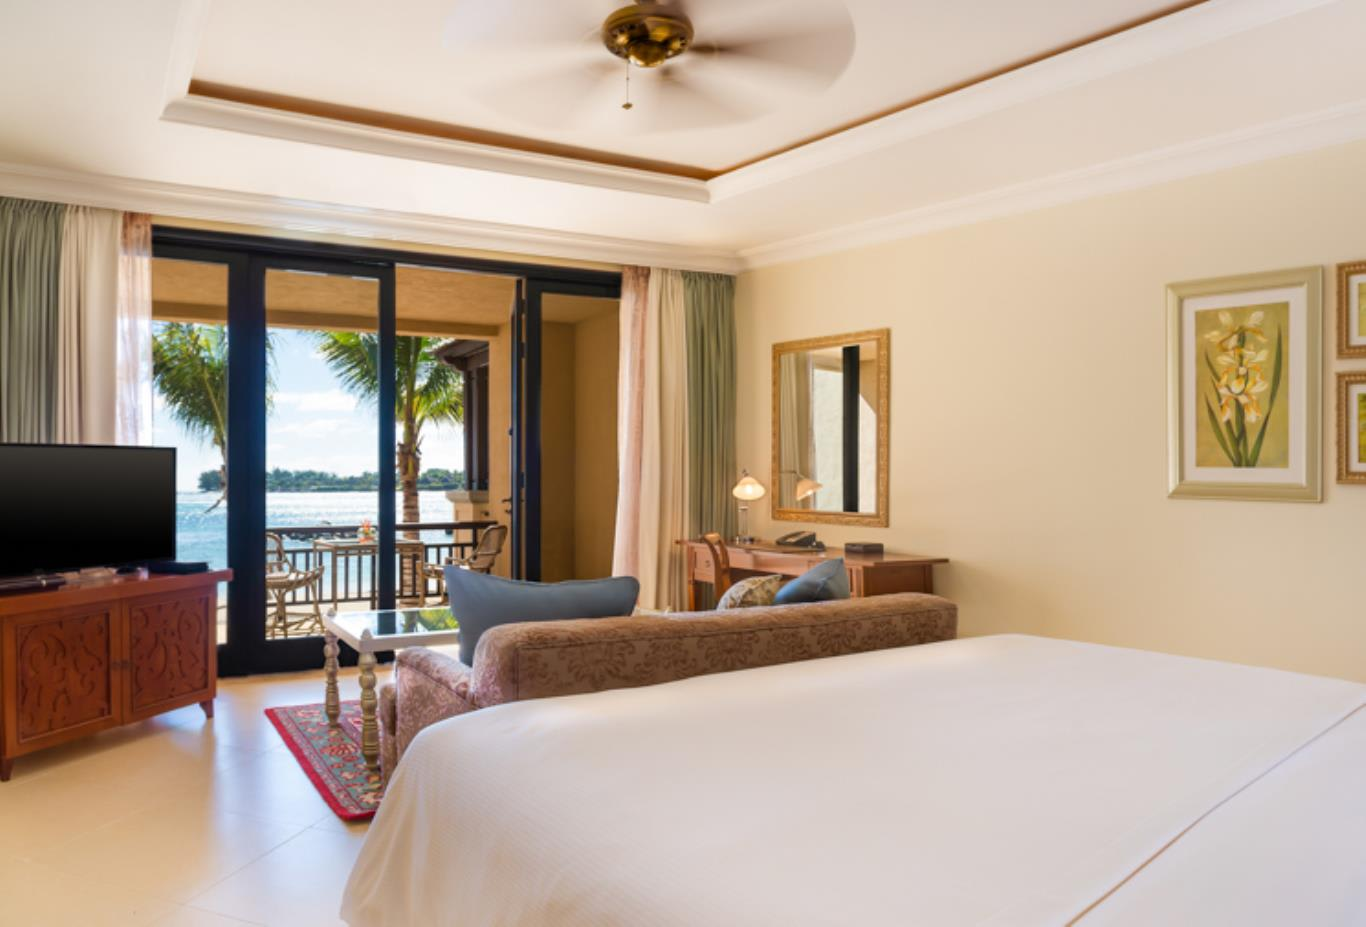 Beachfront Deluxe King Room (Queen option available)